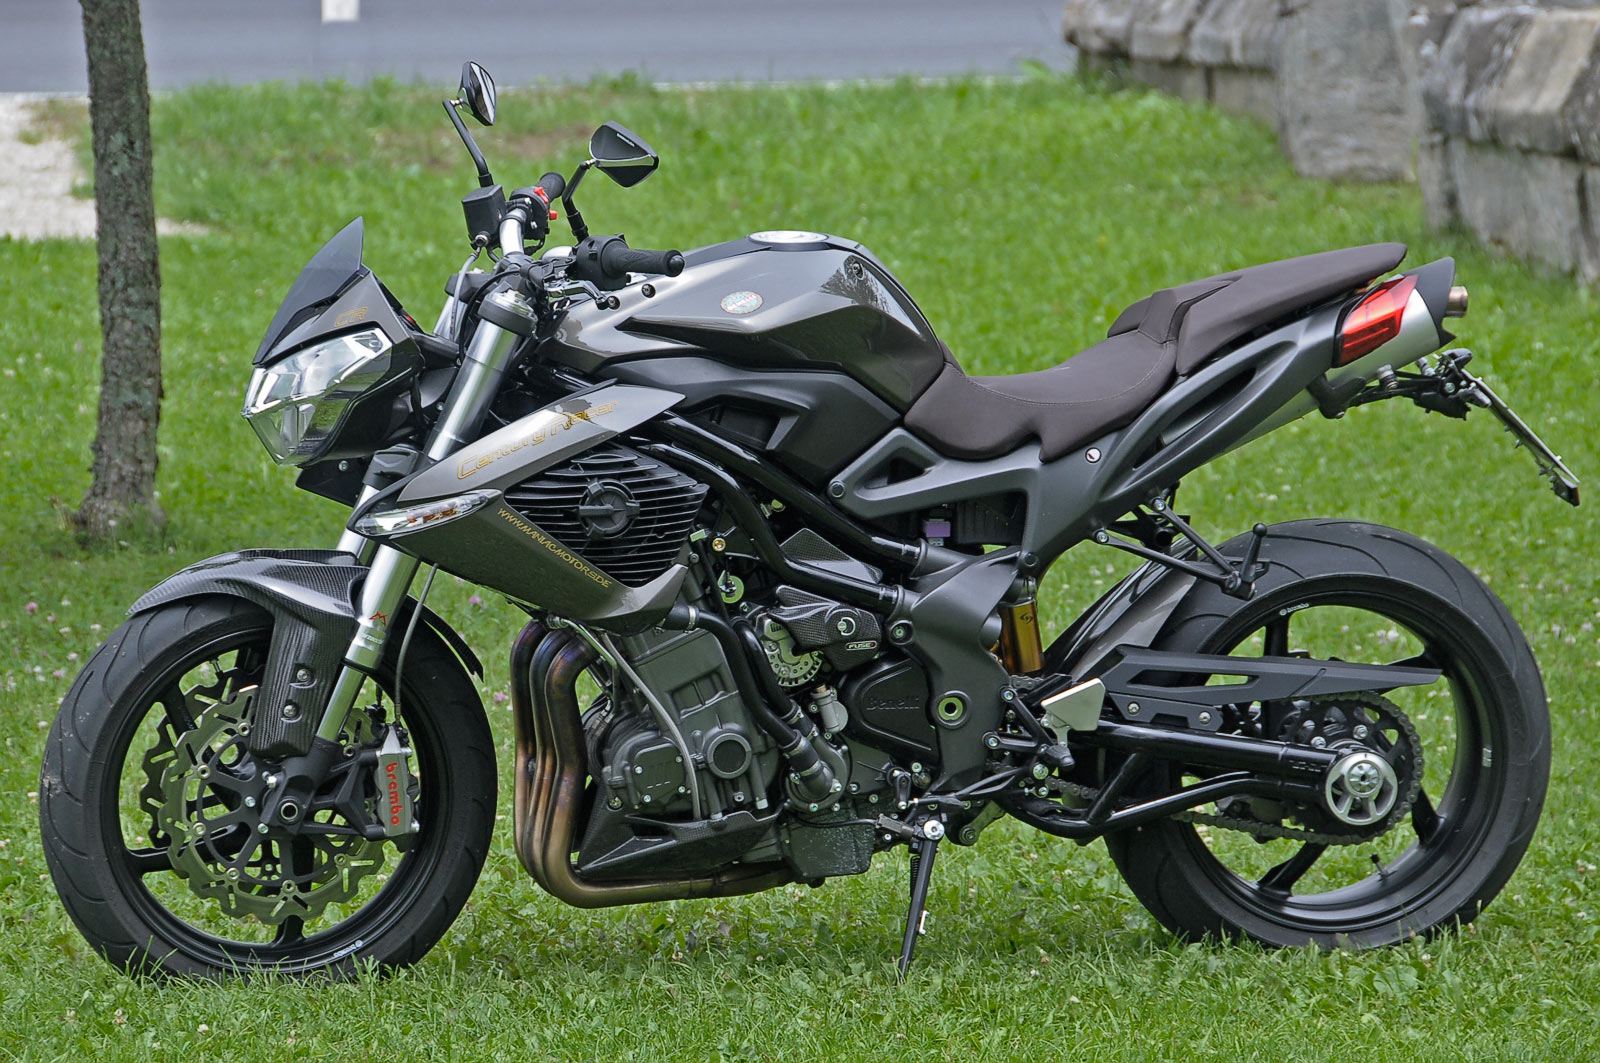 Benelli Century Racer 1130 2011 images #76403